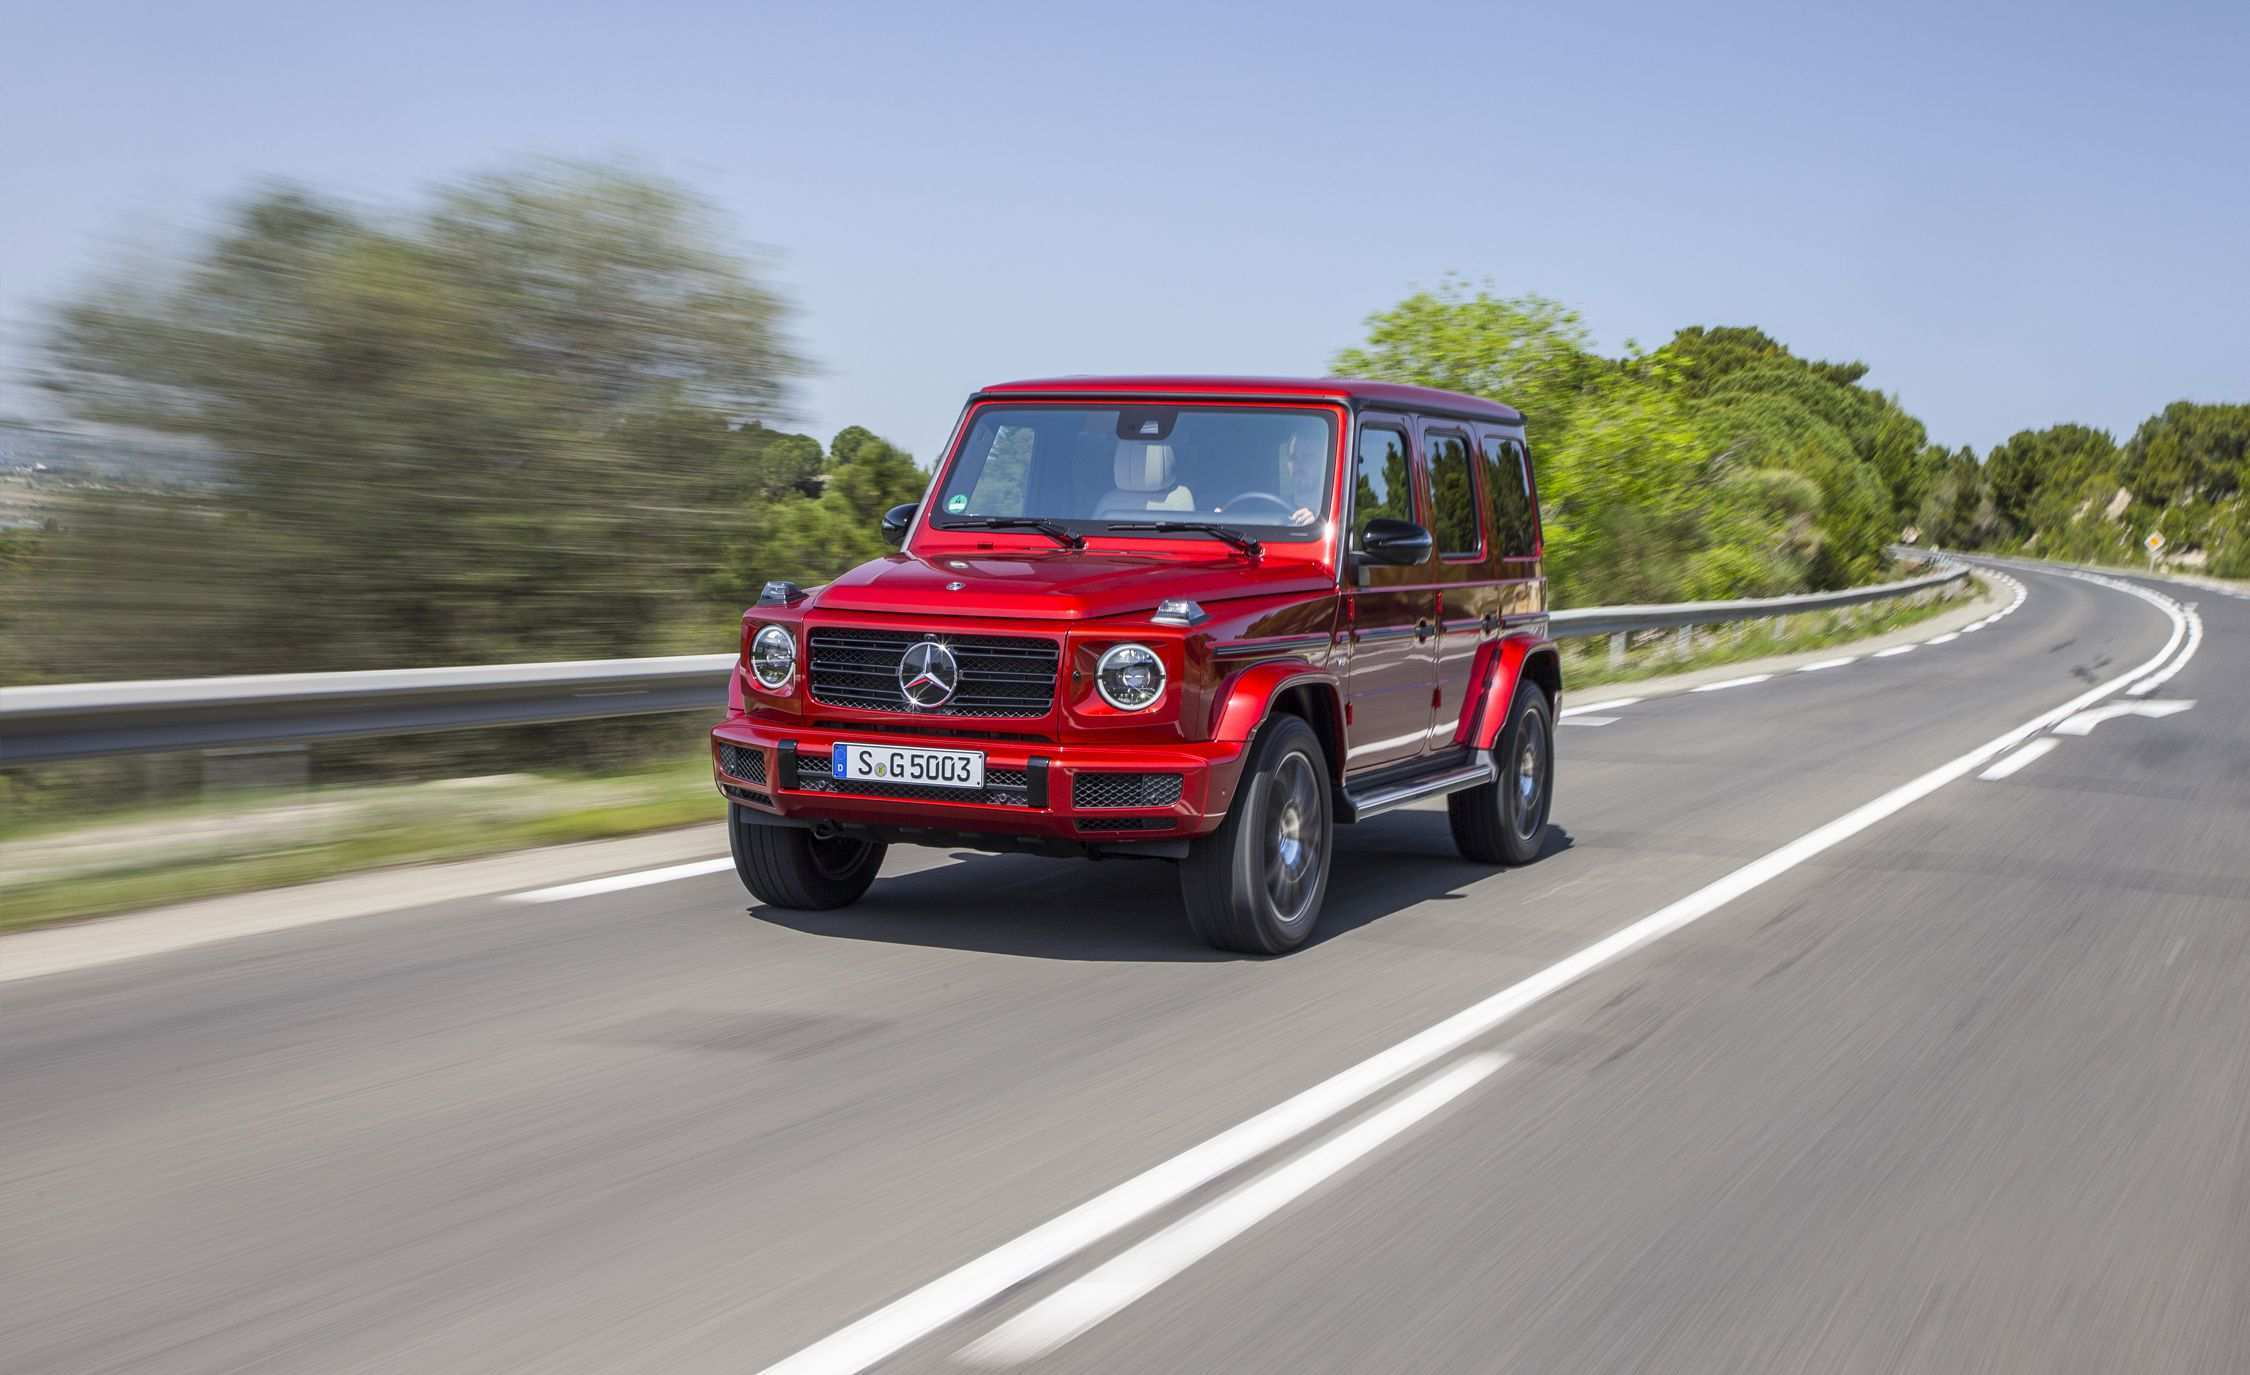 85 Concept of Mercedes G Class 2019 Youtube Review And Price Spesification with Mercedes G Class 2019 Youtube Review And Price